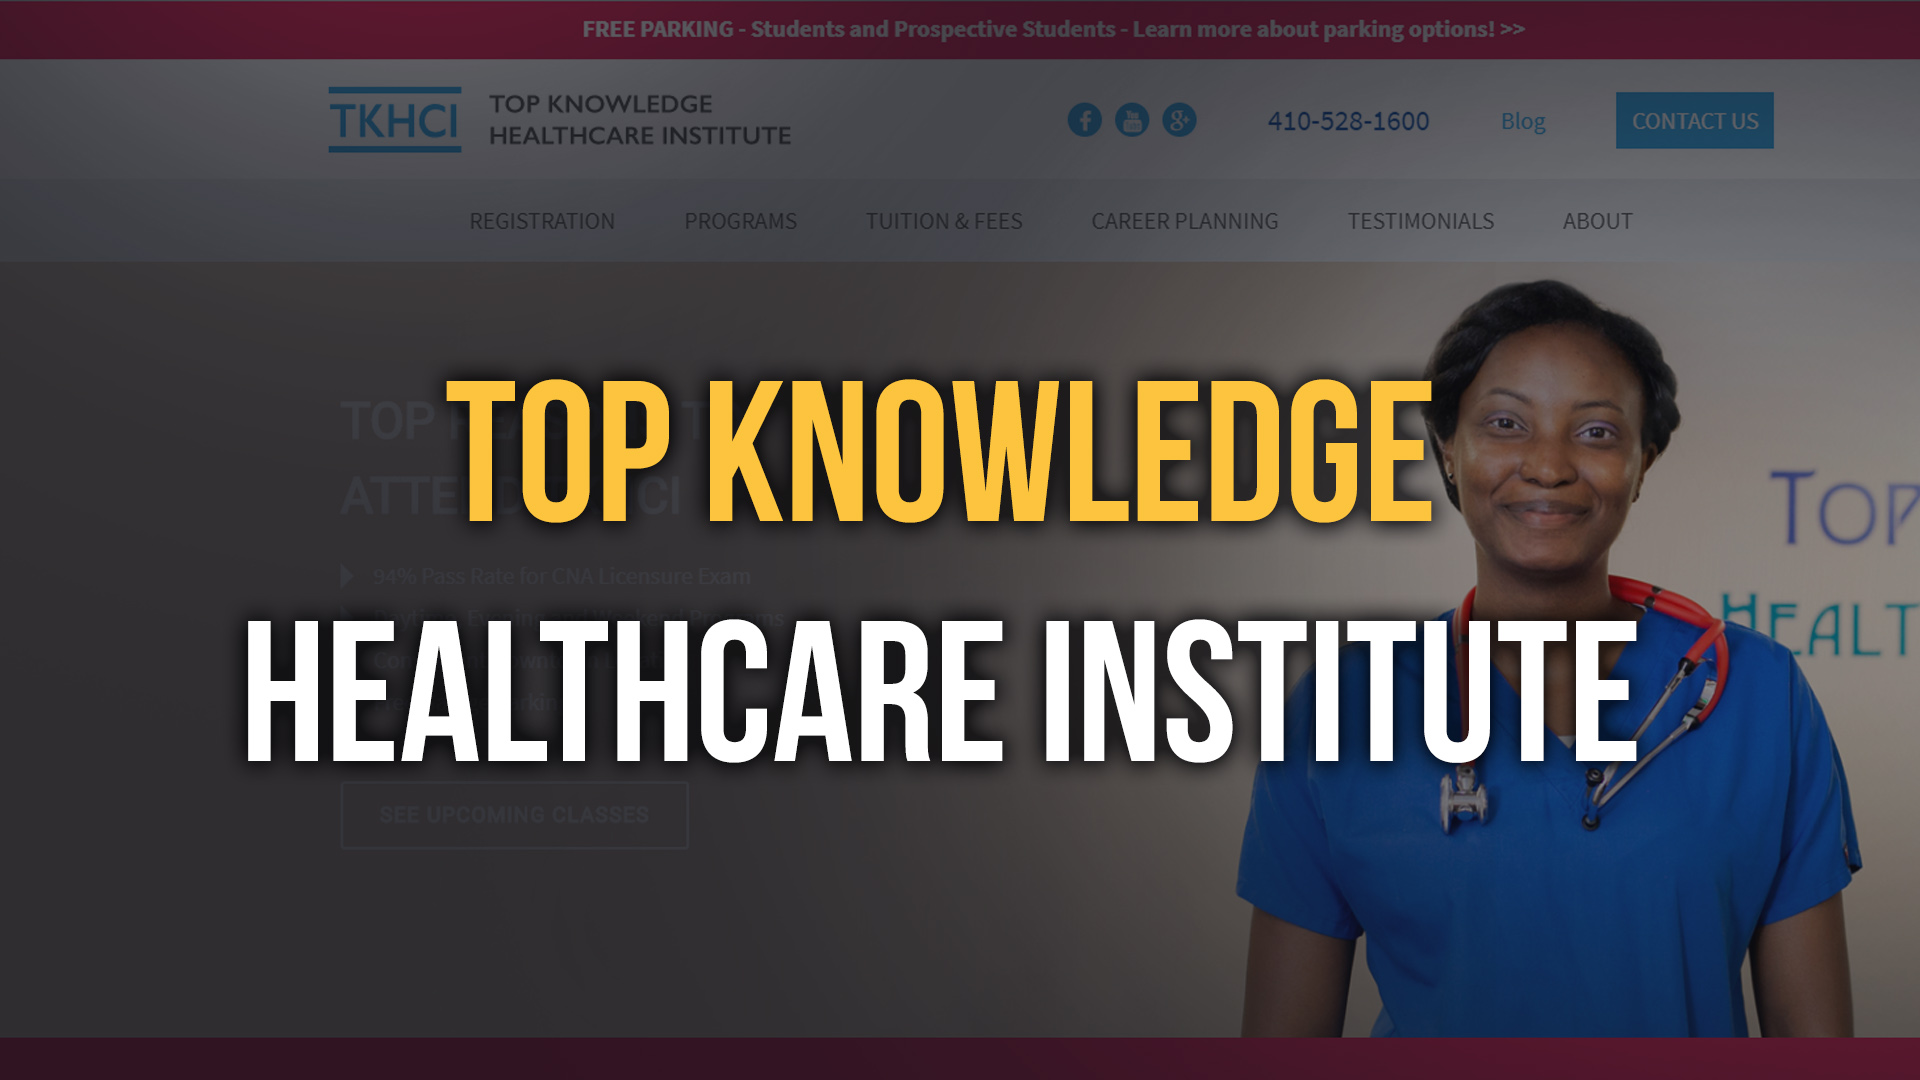 Top Knowledge Healthcare Institute